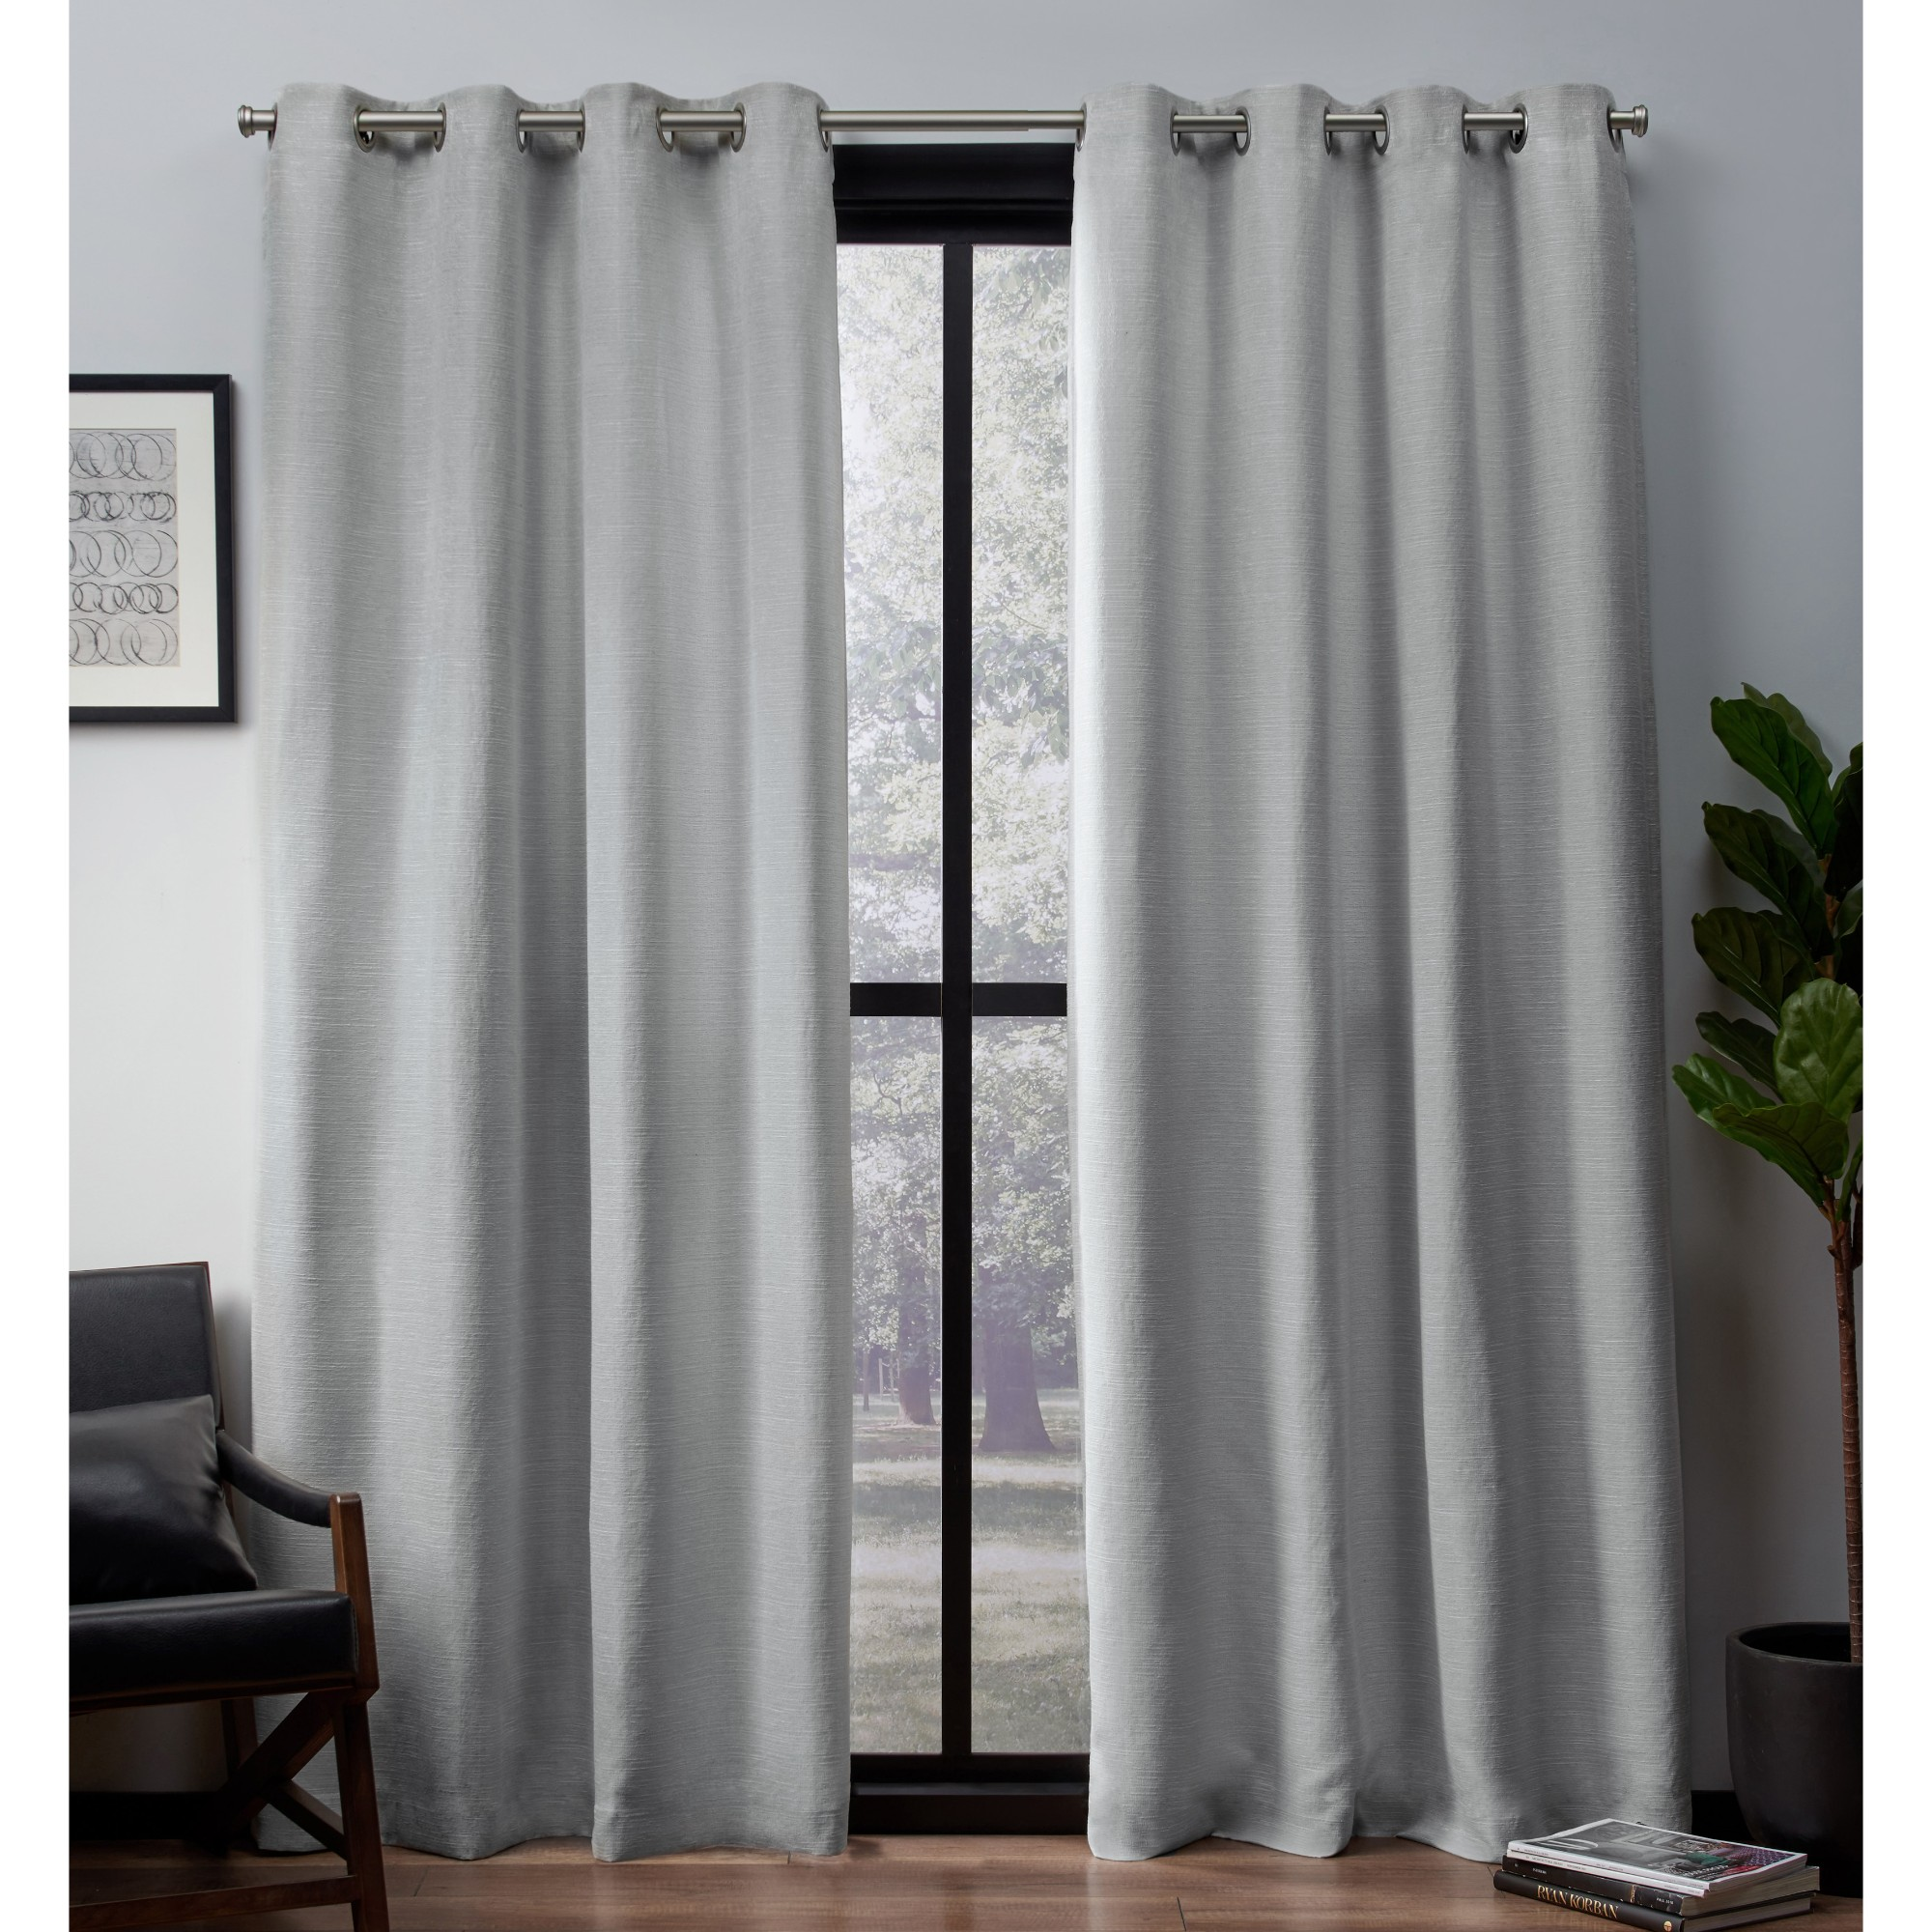 Exclusive Home Leeds Textured Slub Woven Blackout Window Curtain Panel Pair with Grommet Top